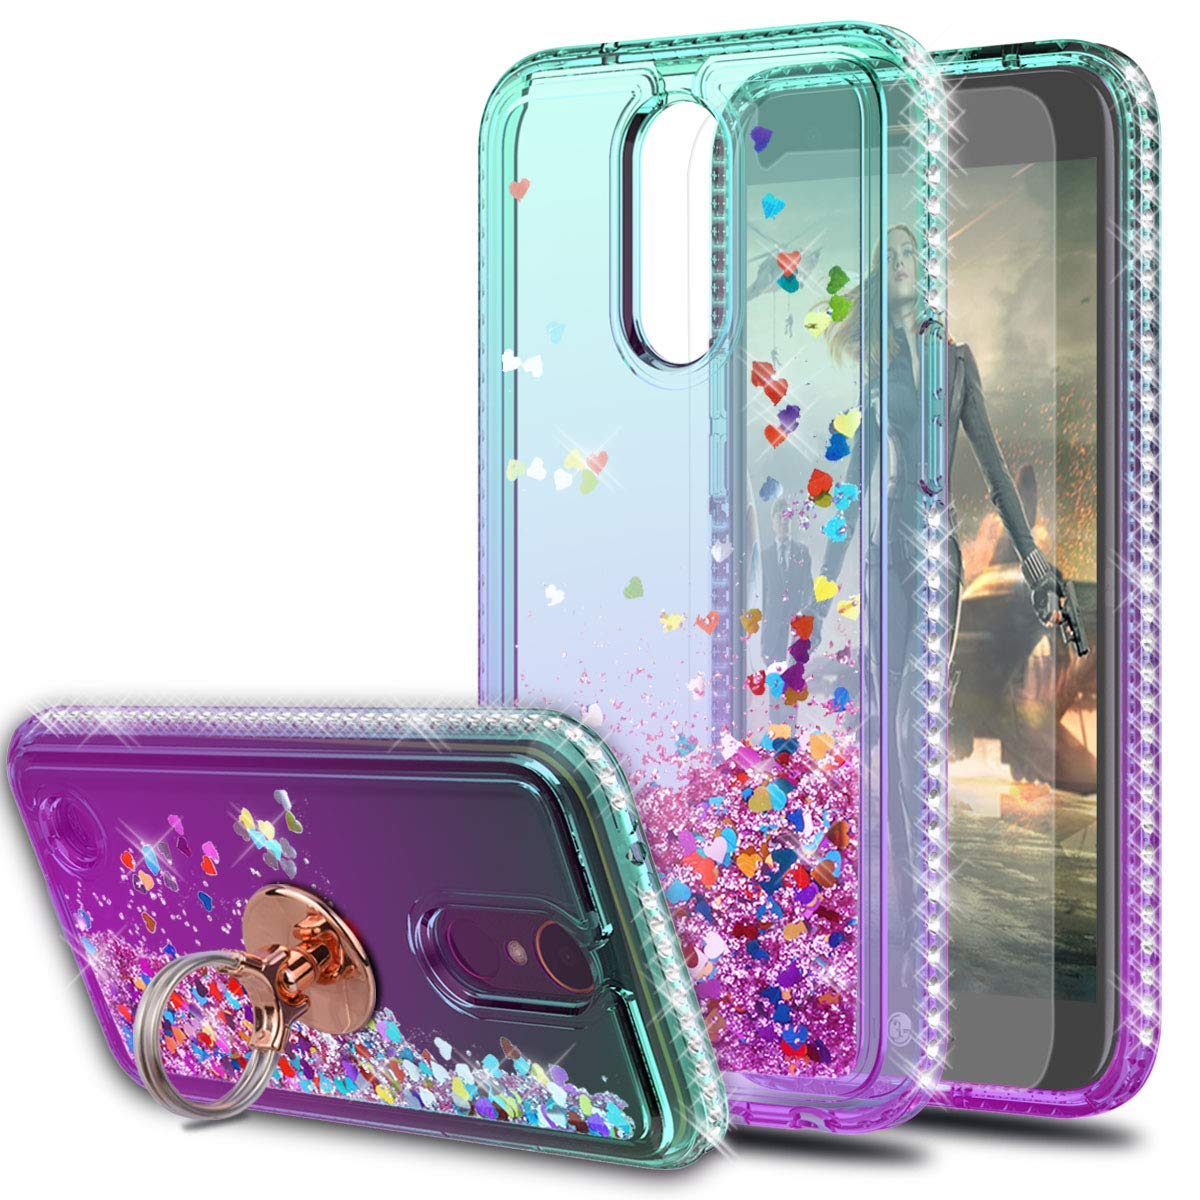 LG K20 Plus Case,LG Harmony/LG K20/LG K20V/LG VS501/LG K10 2017 Case with HD Screen Protector with Ring Holder,KaiMai Glitter Moving Quicksand Clear Cute Shiny Phone Case for LG LV5-Aqua/Purple Ring by KaiMai